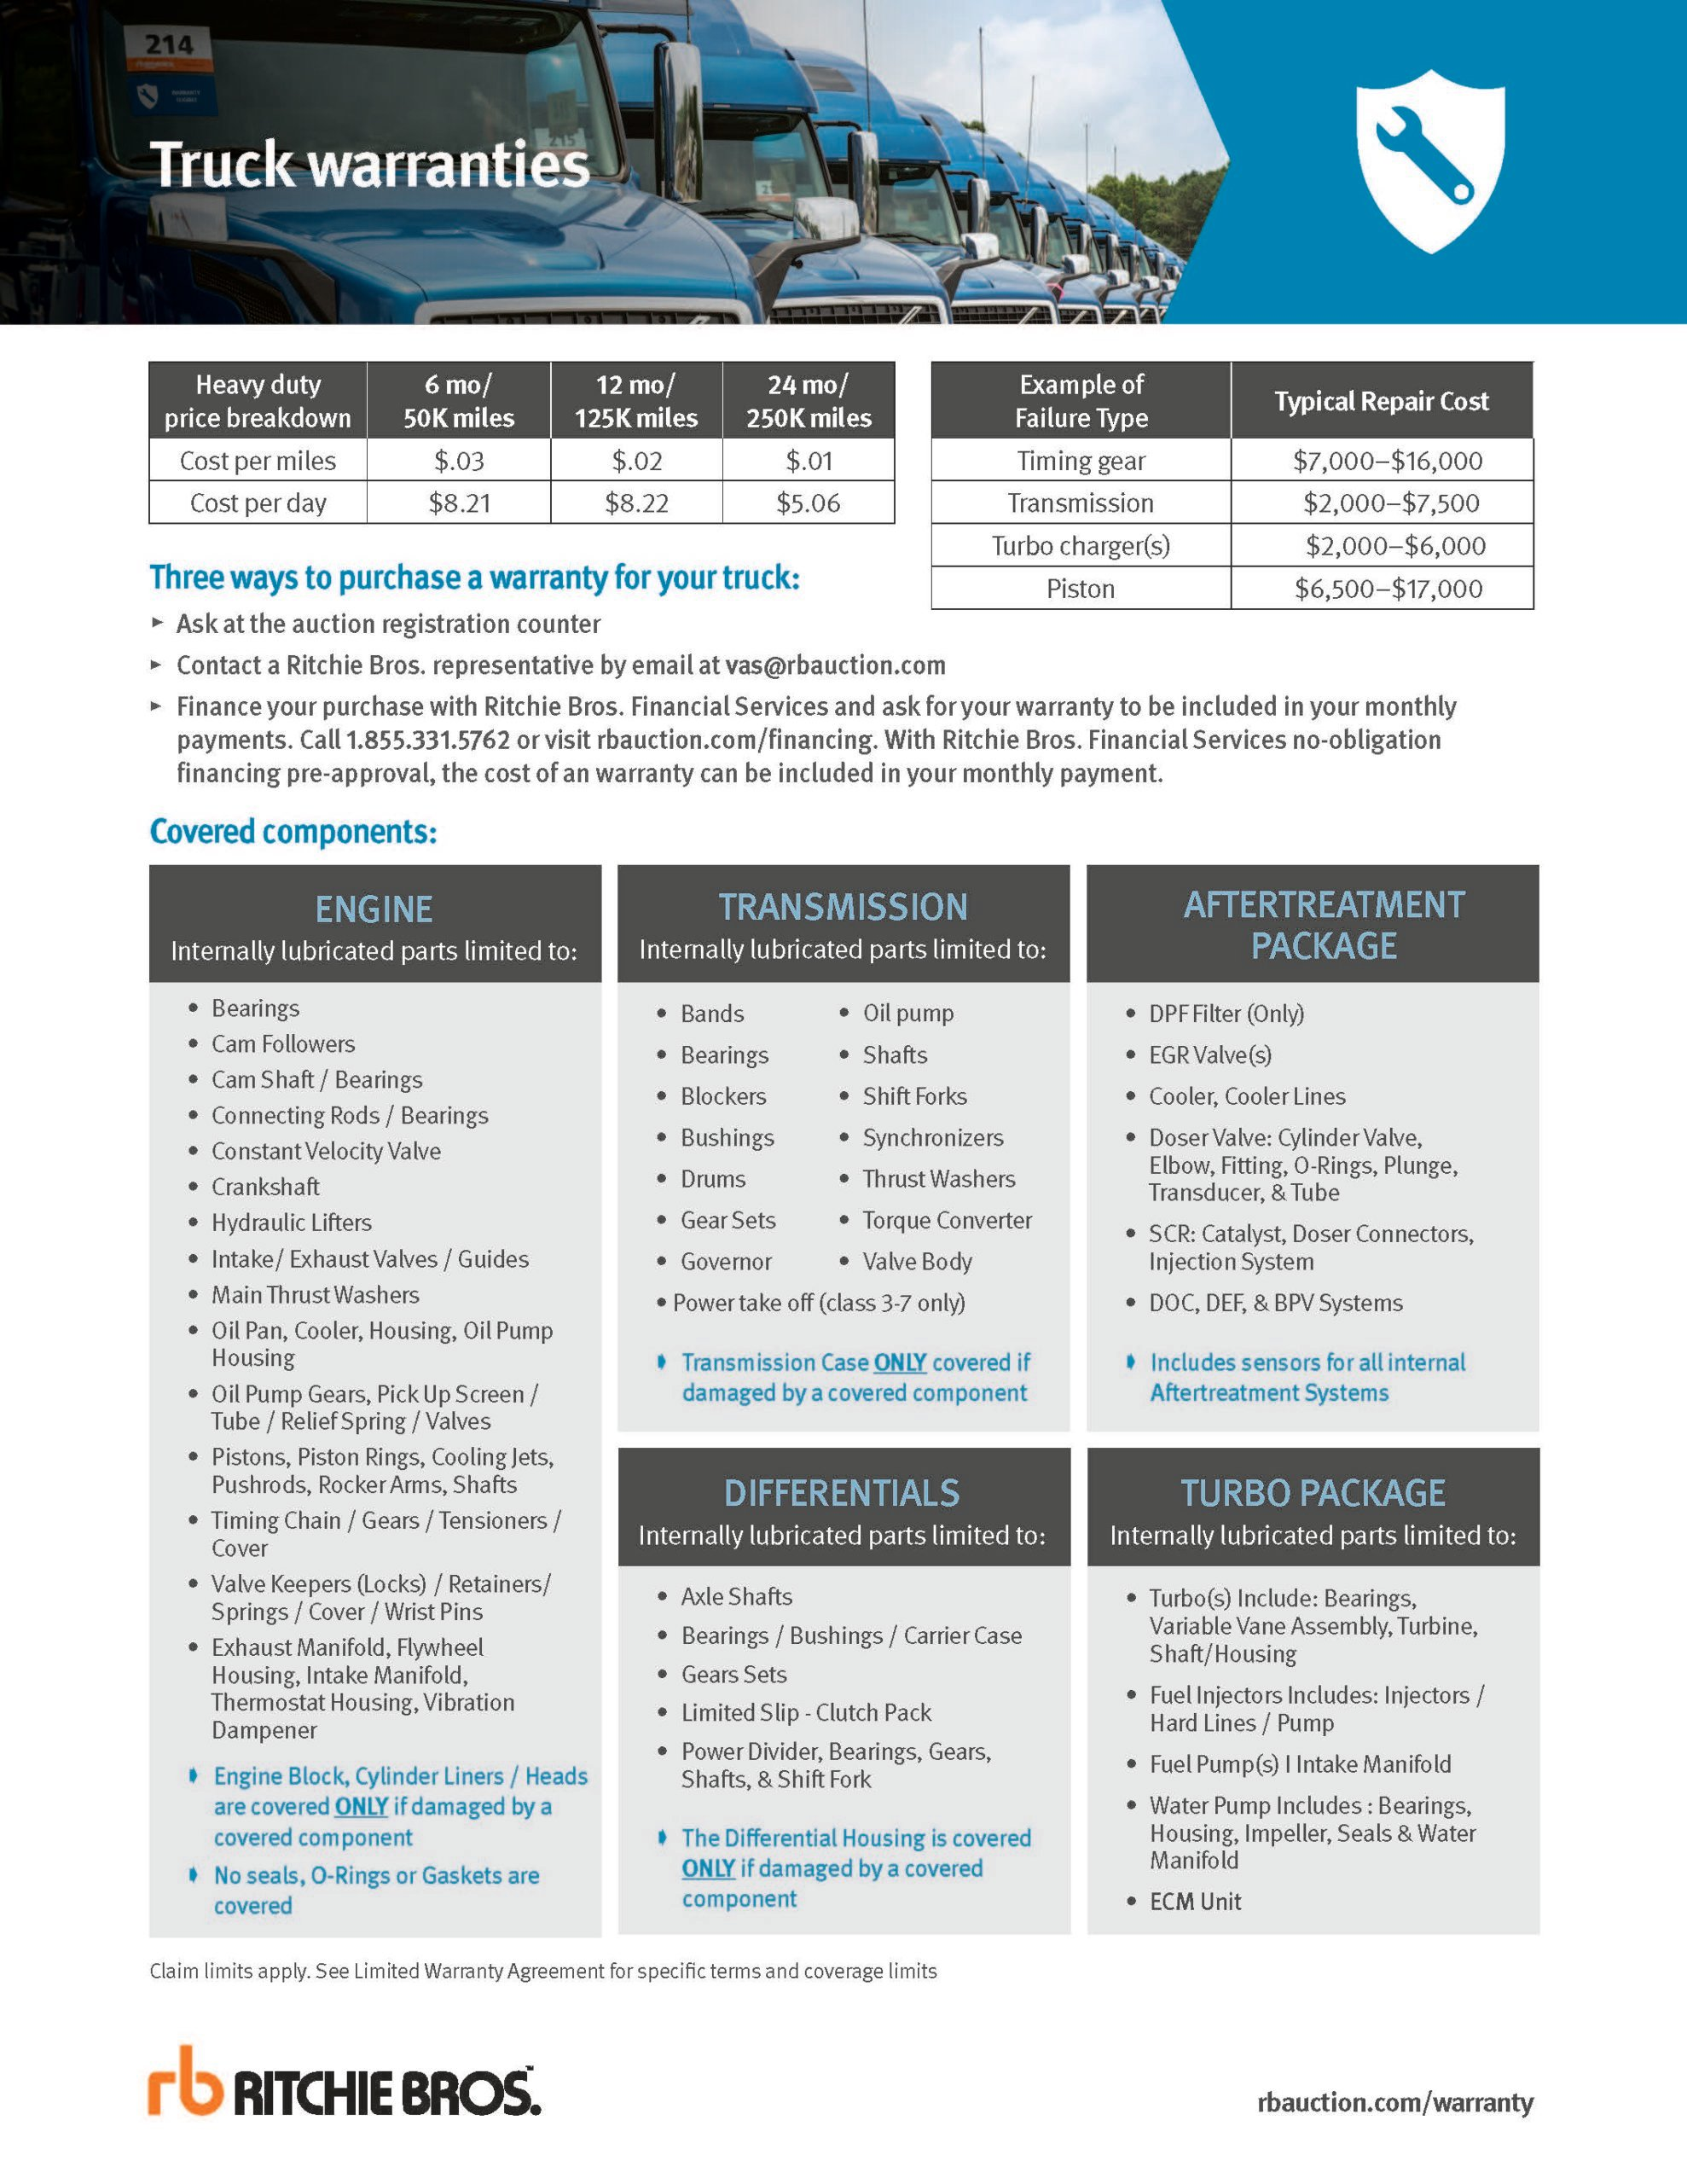 truck warranties pricing sheet 2